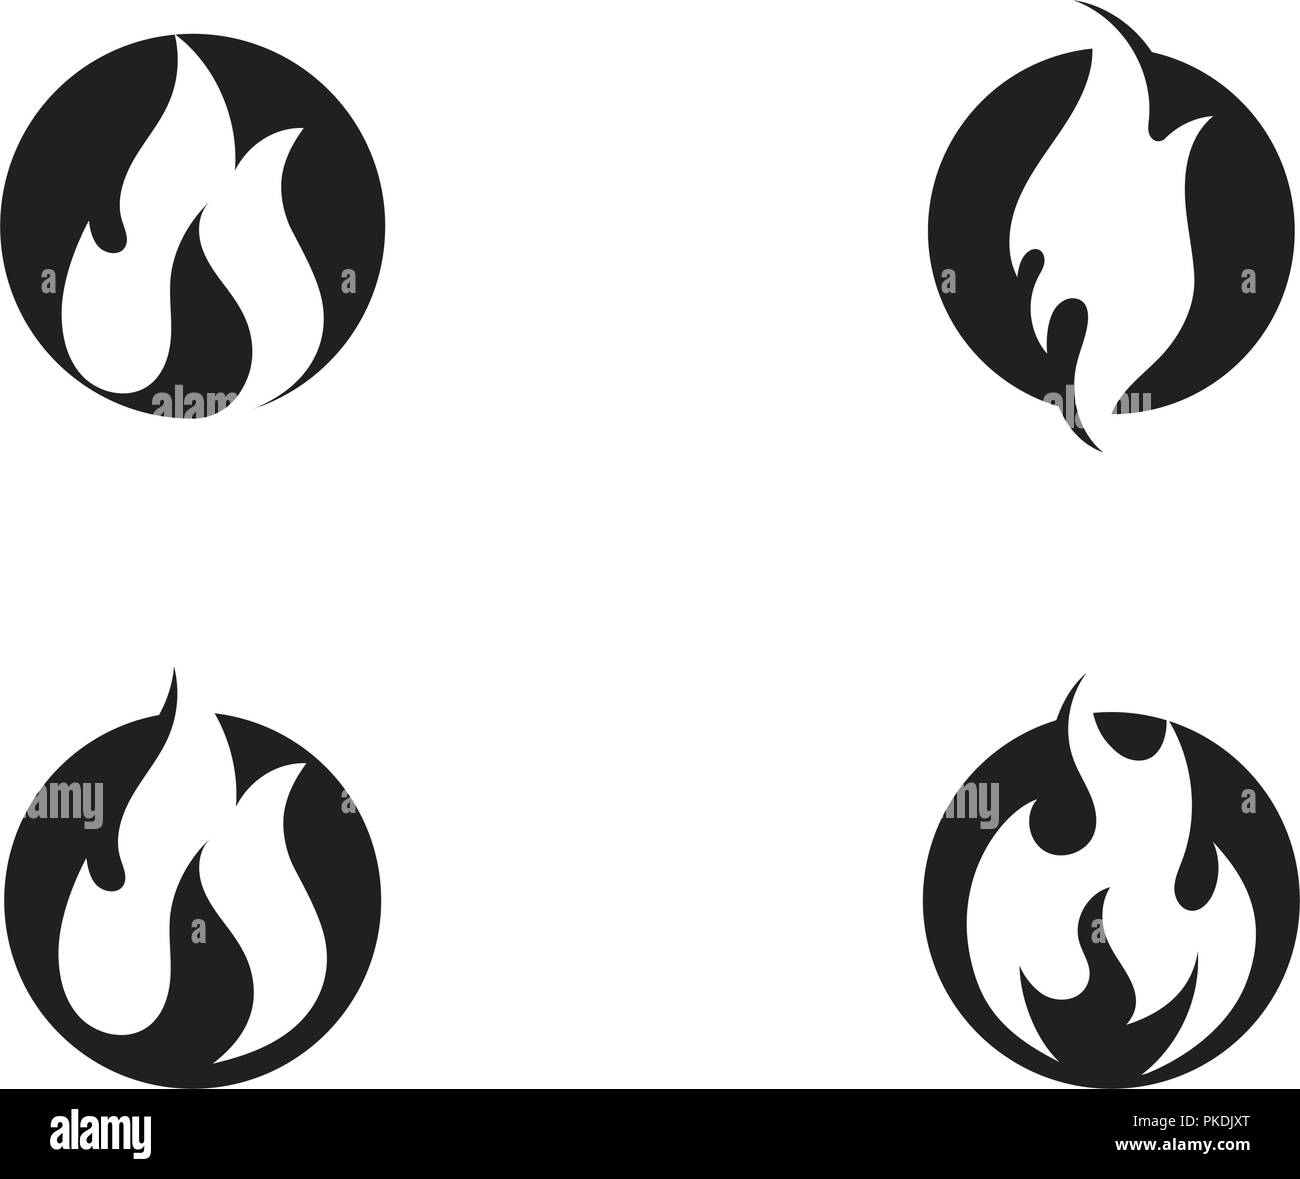 explosion flames cut out stock images pictures page 2 alamy